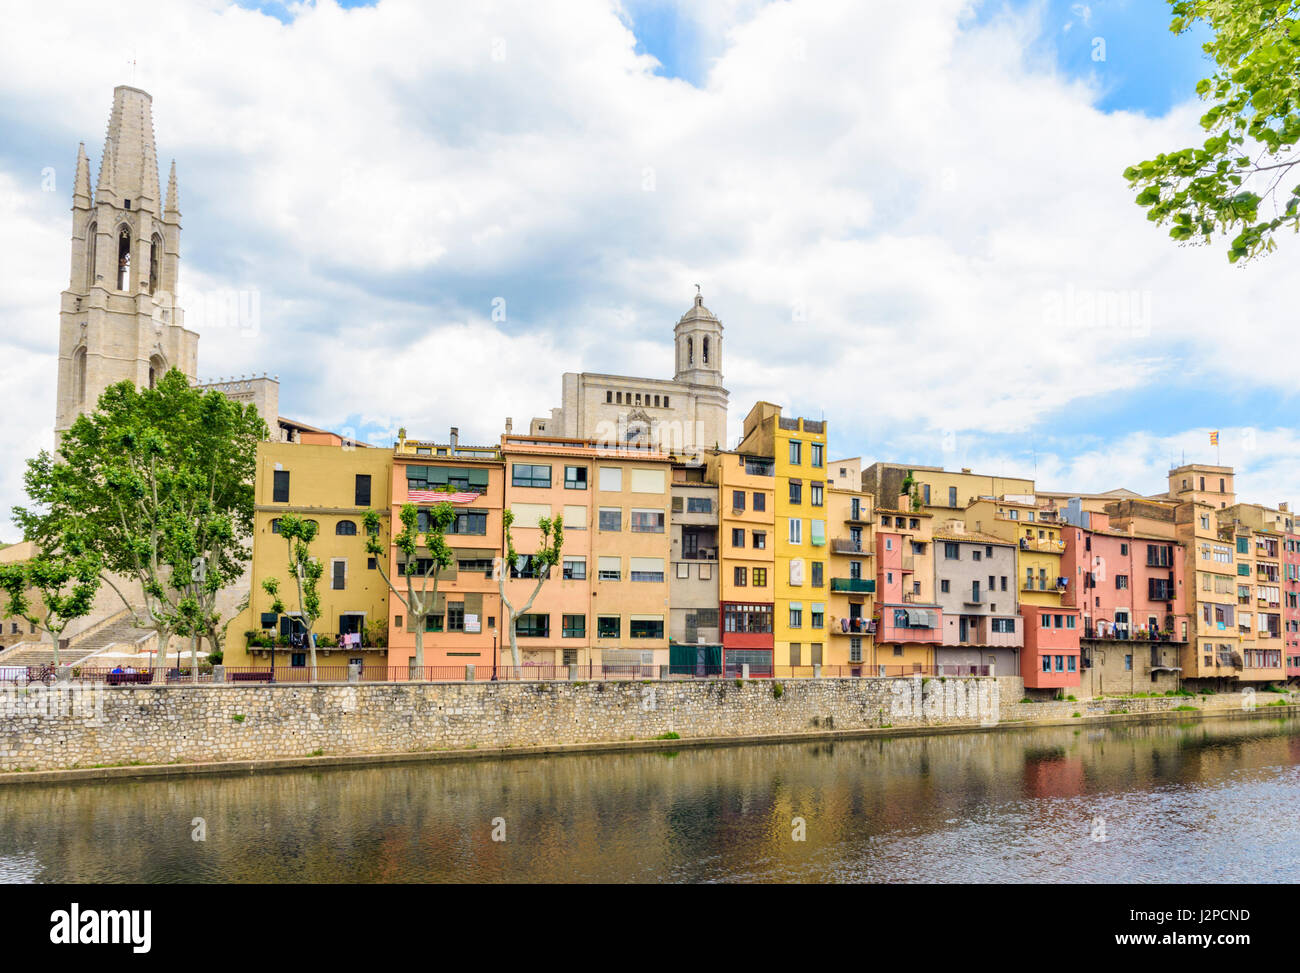 Banks of the River Onyar with the Basilica de Sant Feliu and Cathedral belltower towering over the old town hanging - Stock Image